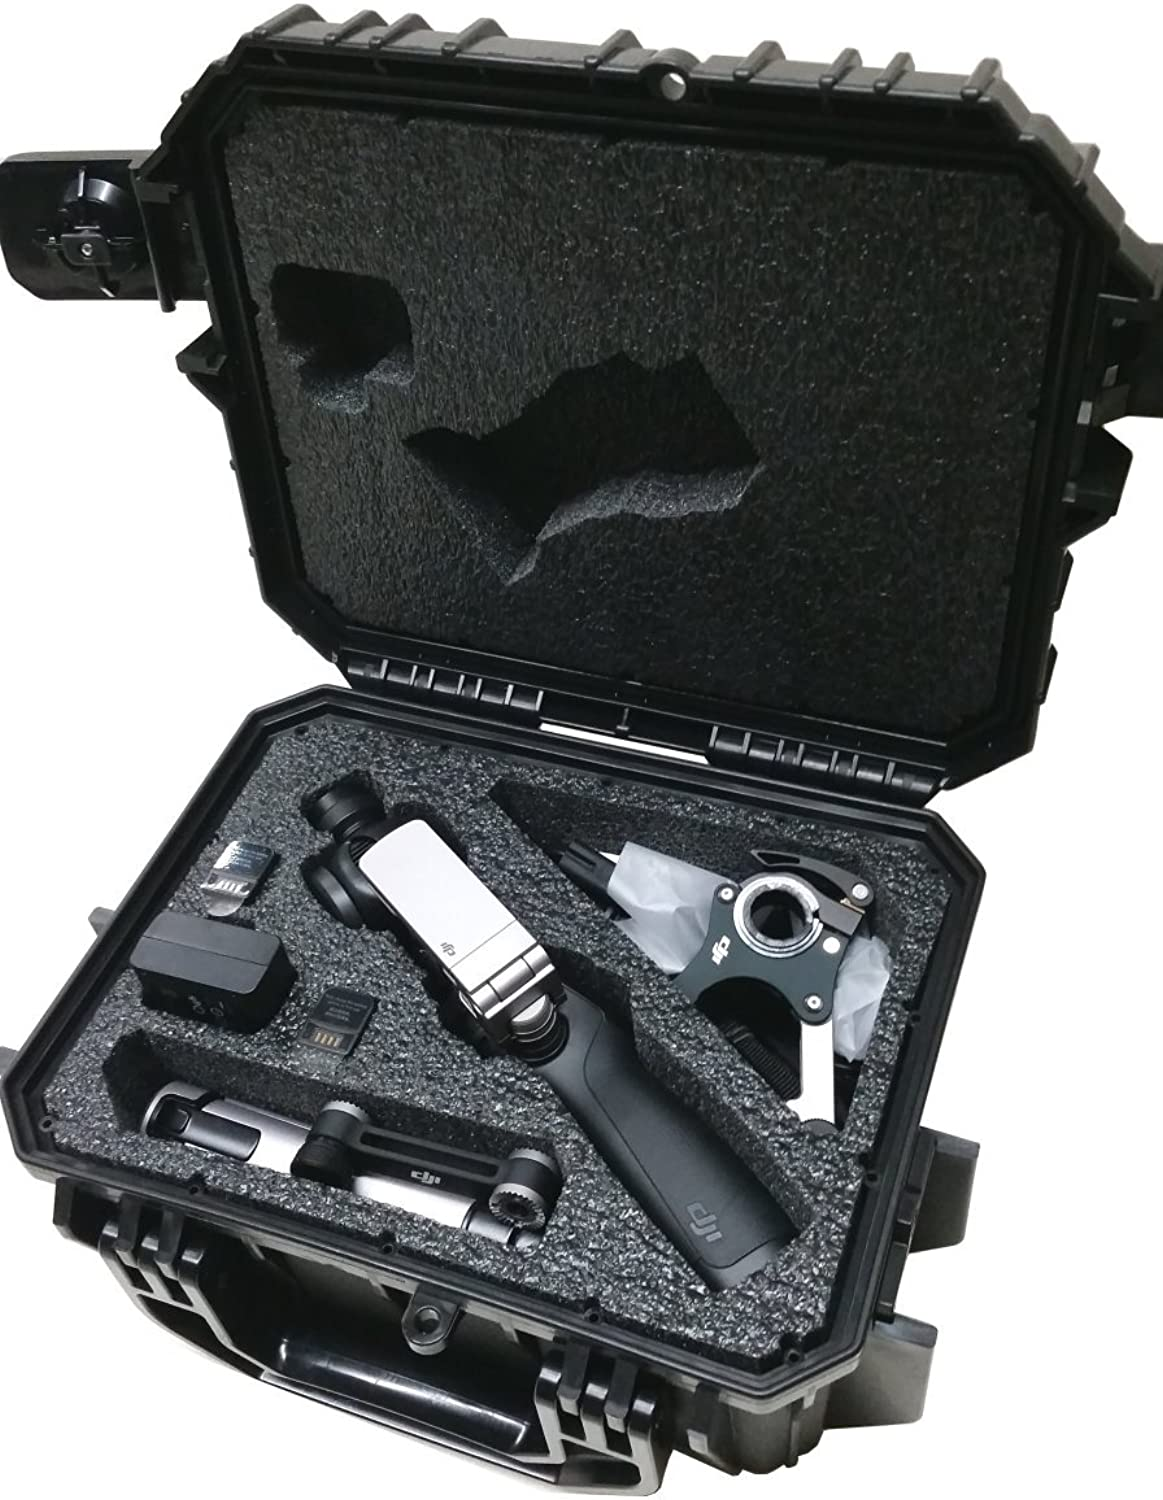 Case Club Waterproof DJI Osmo X3 Case